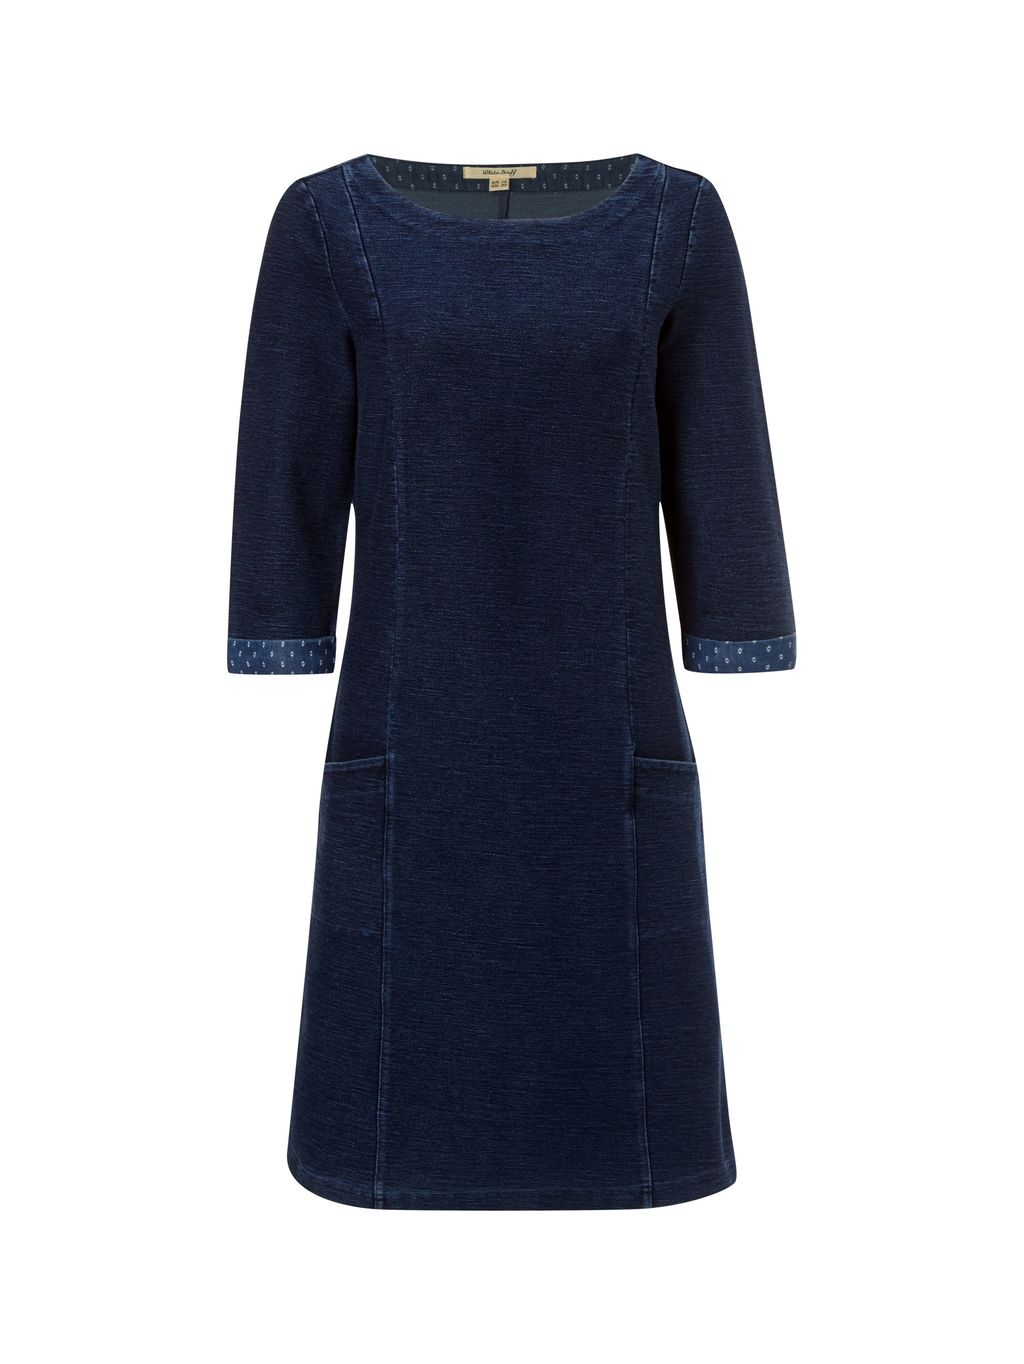 Kinley Jersey Dress, Denim - style: shift; length: below the knee; neckline: round neck; pattern: plain; predominant colour: navy; occasions: casual, creative work; fit: body skimming; fibres: cotton - stretch; sleeve length: 3/4 length; sleeve style: standard; pattern type: fabric; texture group: jersey - stretchy/drapey; season: a/w 2015